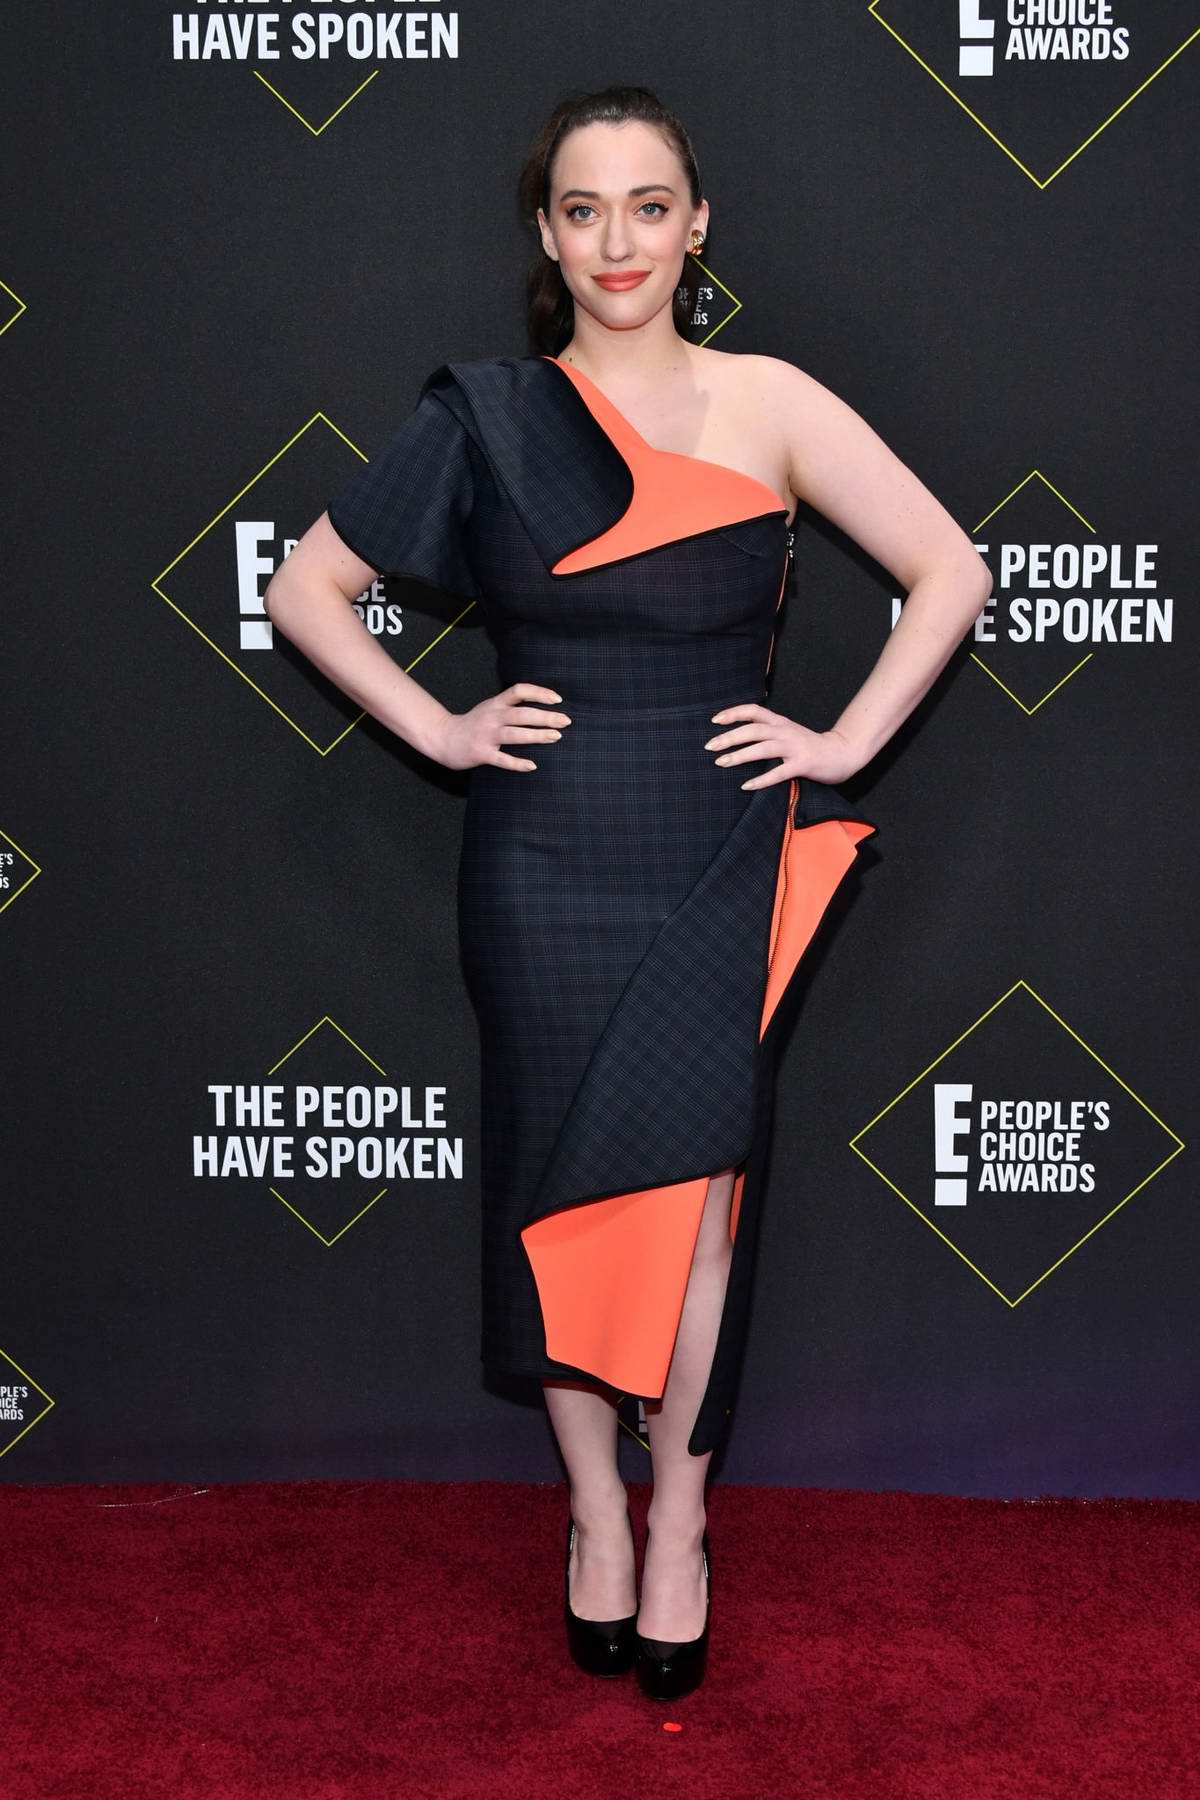 Kat Dennings attends the 2019 E! People's Choice Awards held at the Barker Hangar in Santa Monica, California